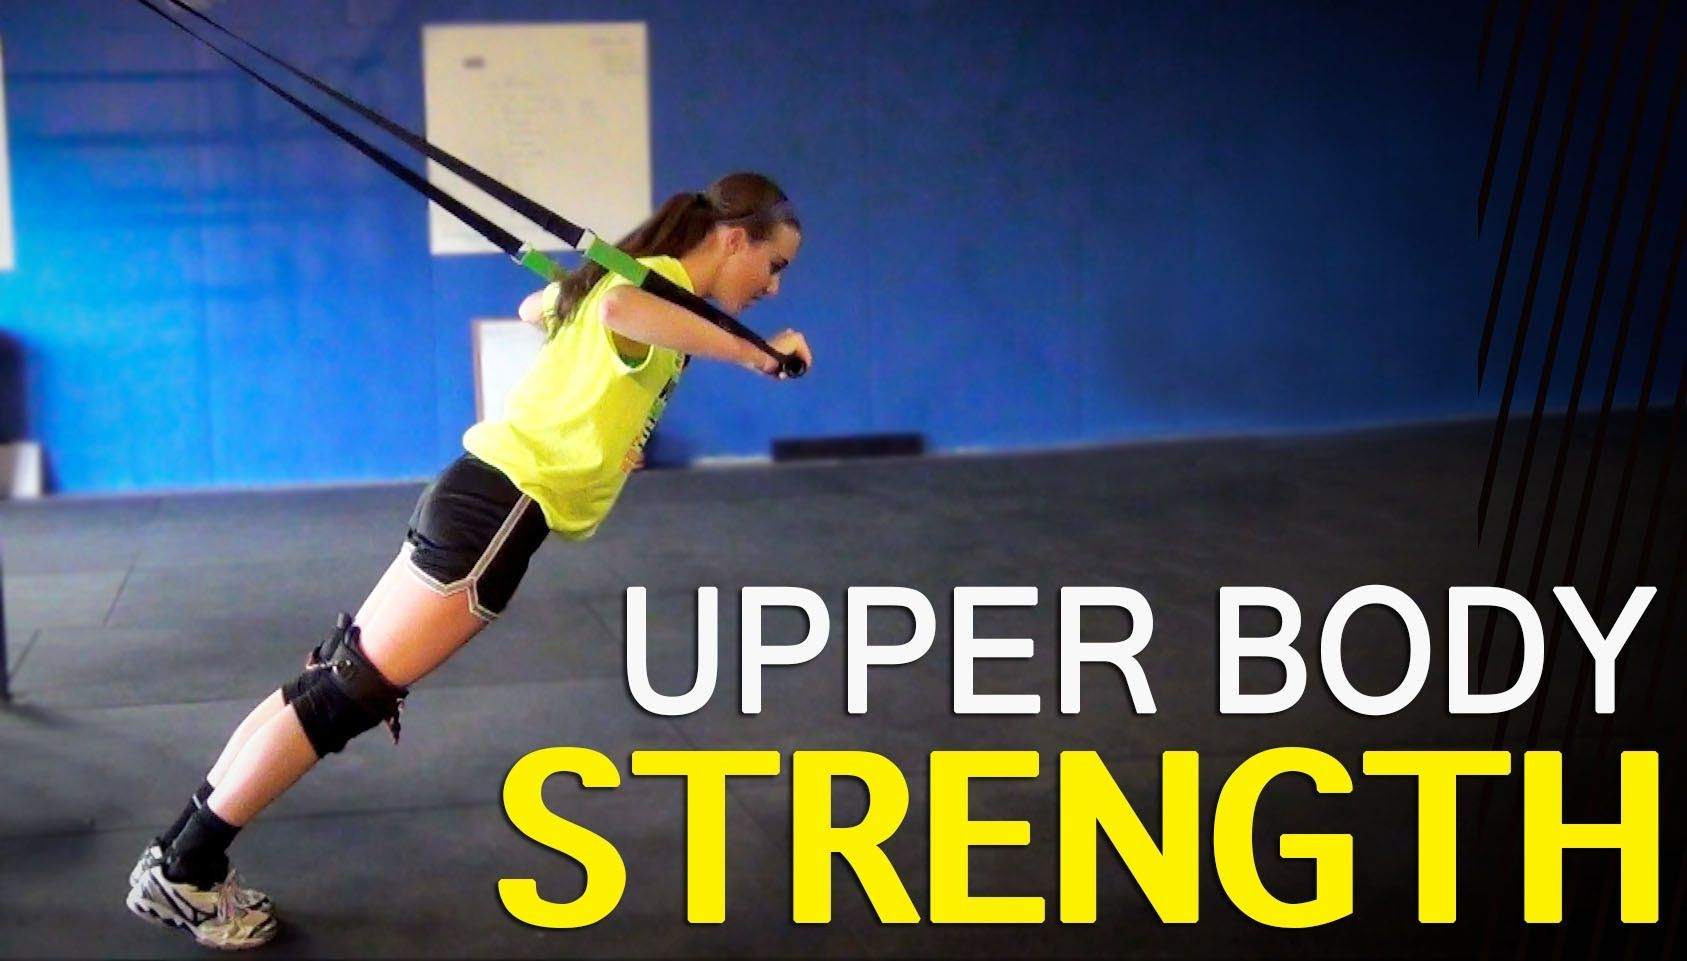 Body Weight Exercises For Volleyball Upper Body Strength Visit Www Myosource Com And Use The Coupon Code Upper Body Strength Bodyweight Workout Body Weight